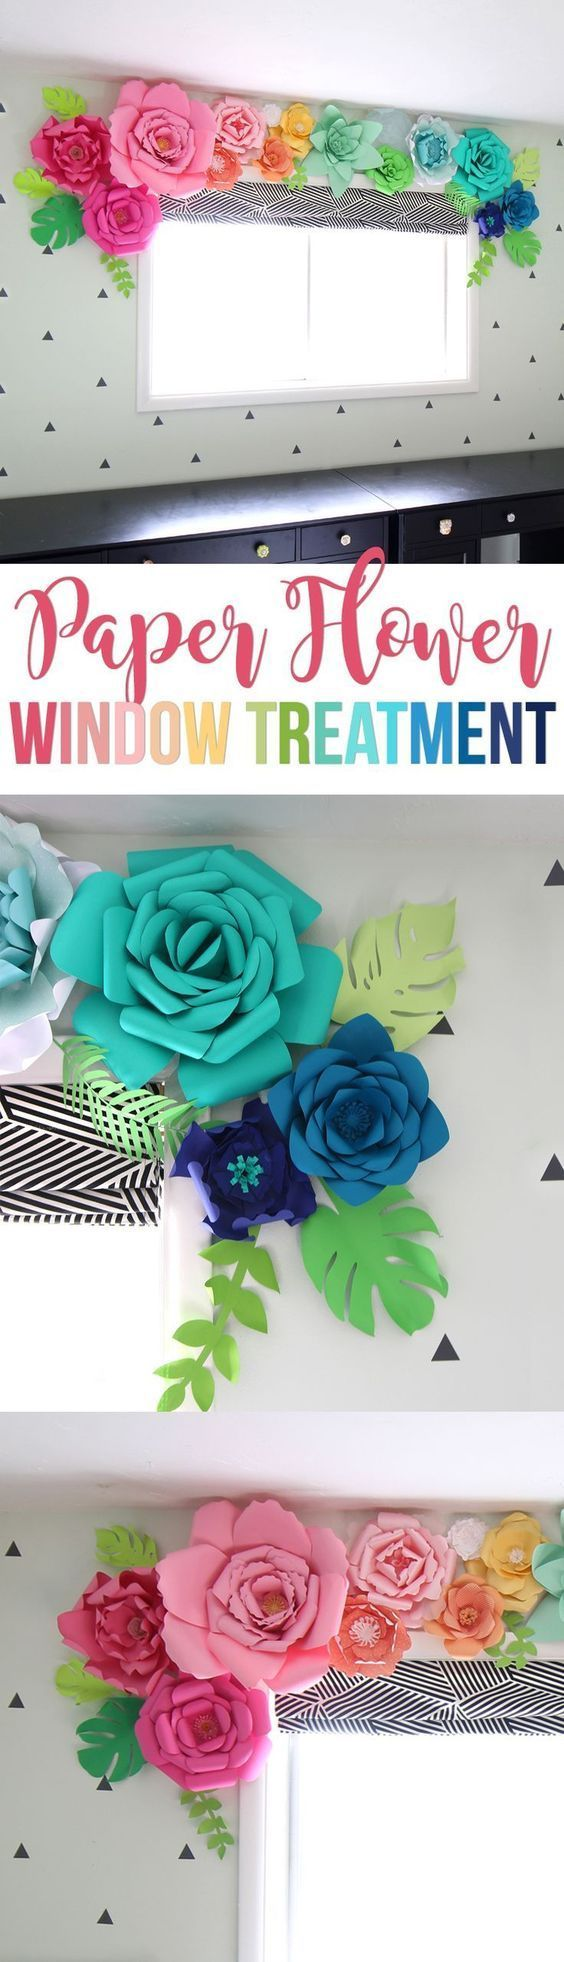 Create a whimsical, colorful and unique window treatment using giant paper flowers. So cute for a little girls room! Or use the same idea for a party backdrop. Free paper flower templates and Silhouette Cameo or Portrait cut file.